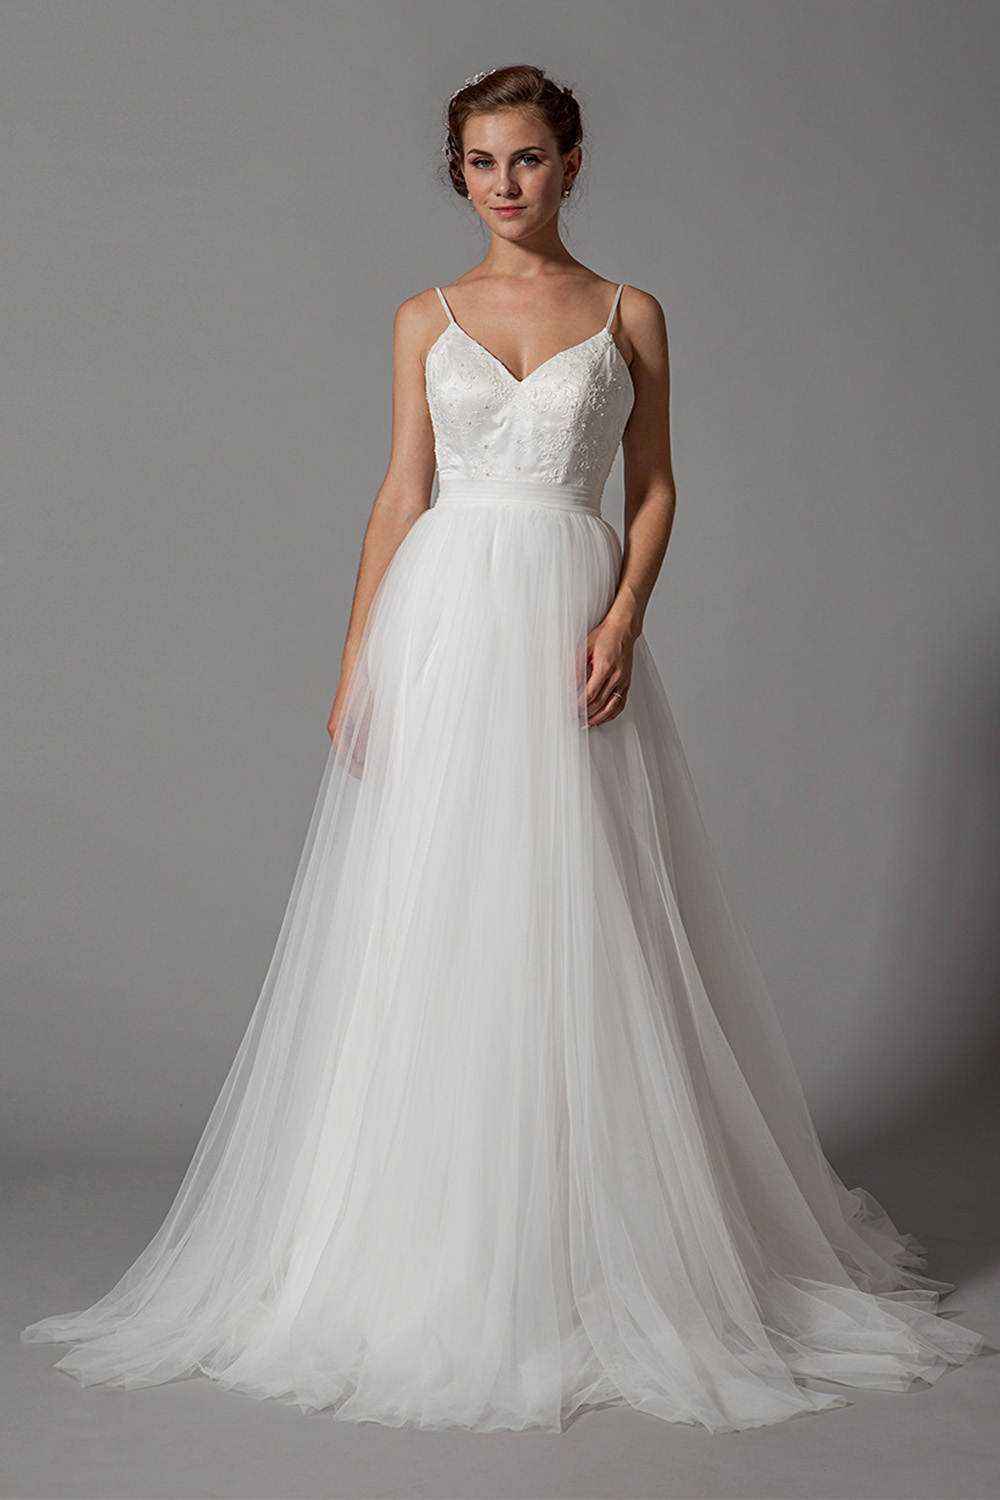 Plus Size A-line Soft Tulle Wedding Dress W/Spaghetti straps from Curvy  Brides